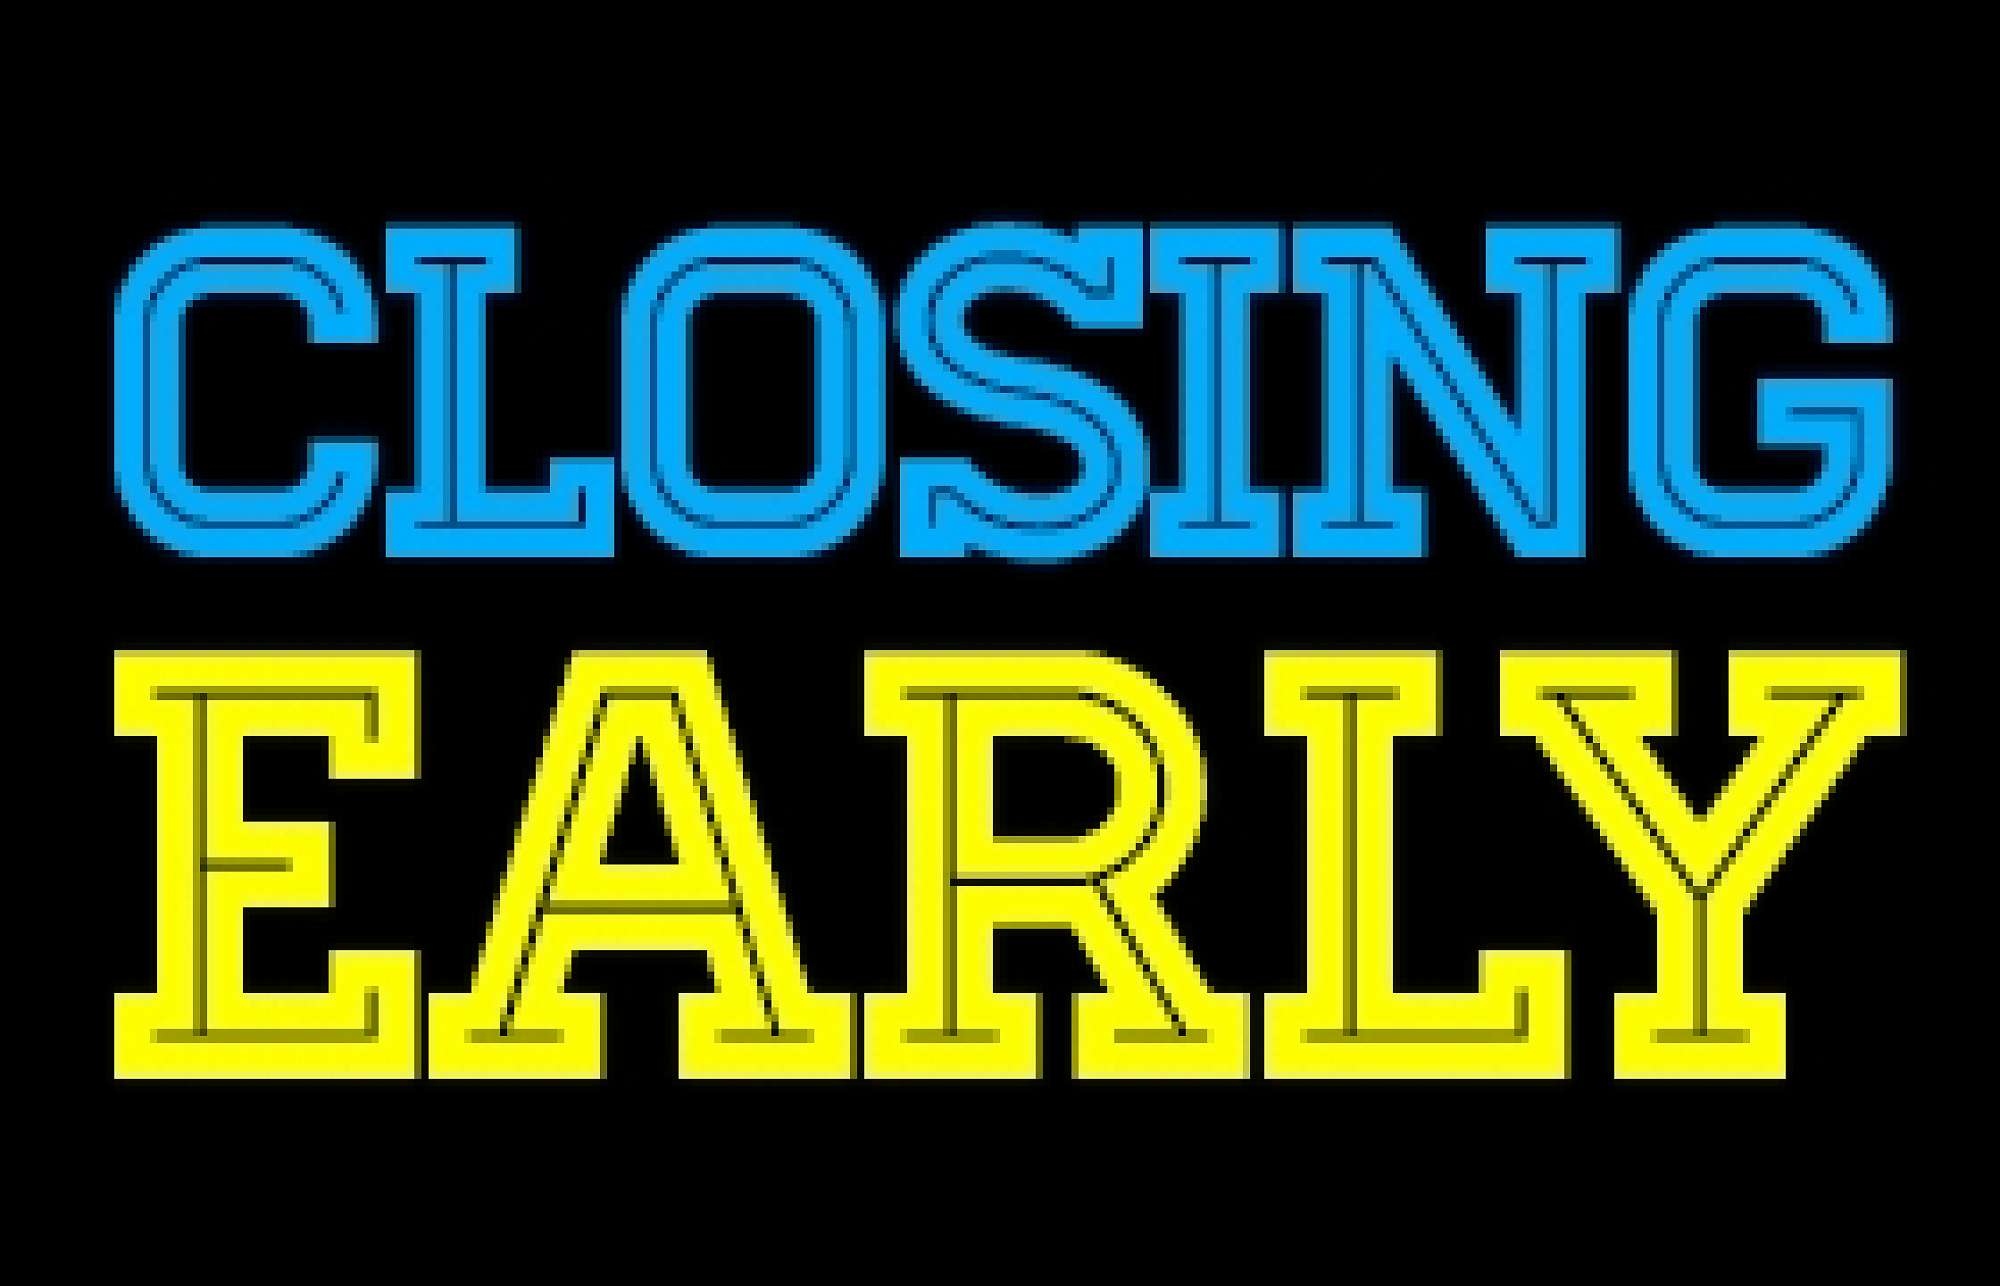 Early Closure - Graphic